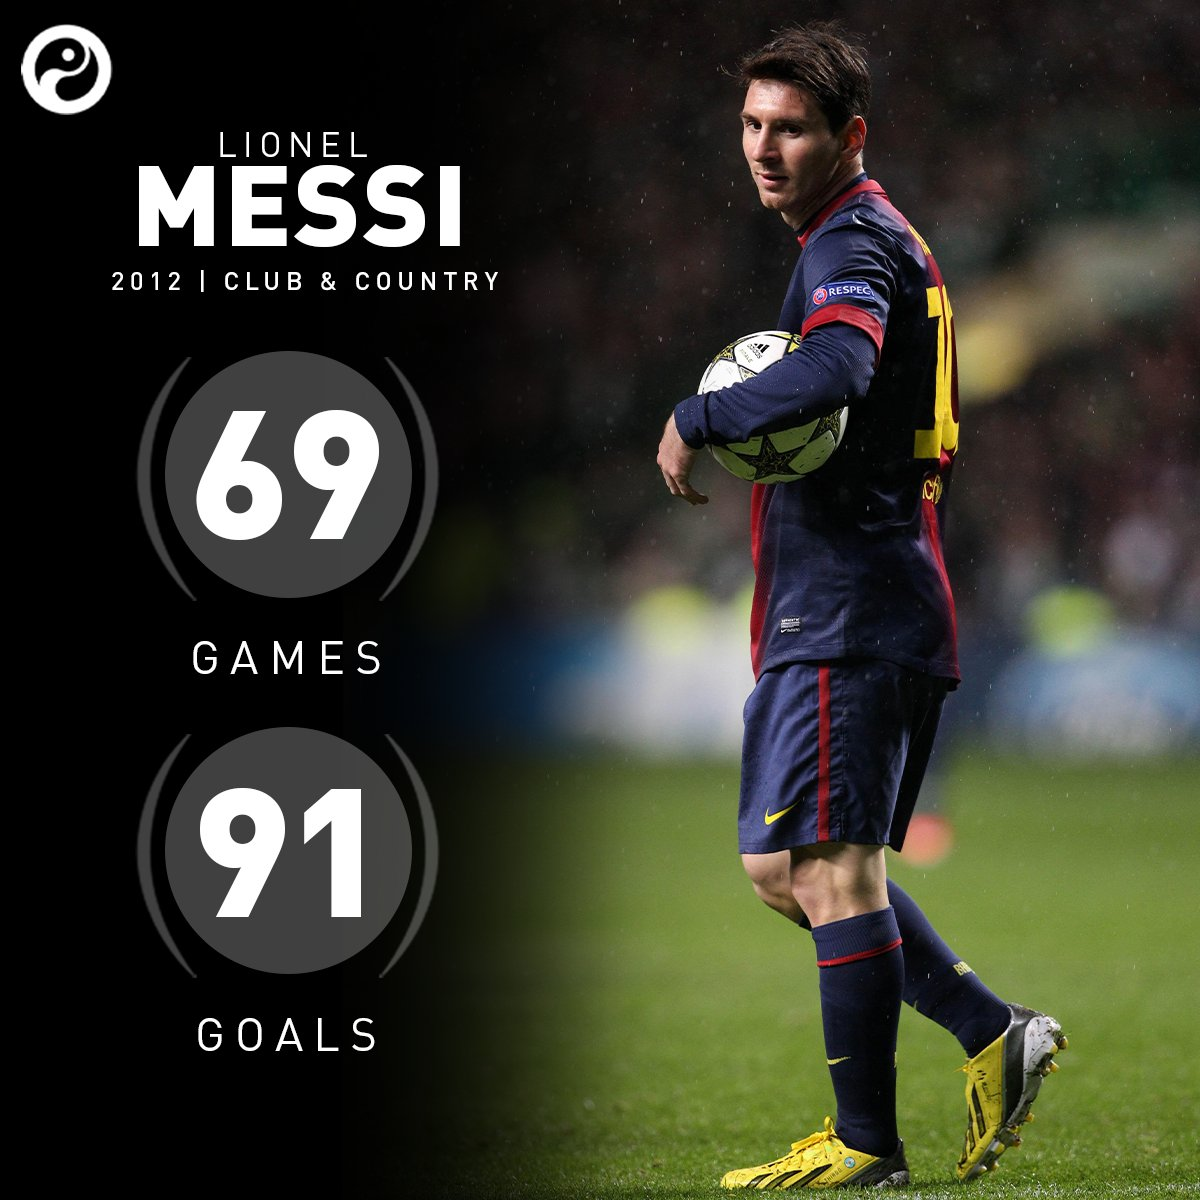 ON THIS DAY: In 2012, Lionel Messi scored his 86th goal of the calendar year, breaking Gerd Müller's all-time record.  He finished with 91 goals... in 69 games.  <br>http://pic.twitter.com/m5eXzUcLoC